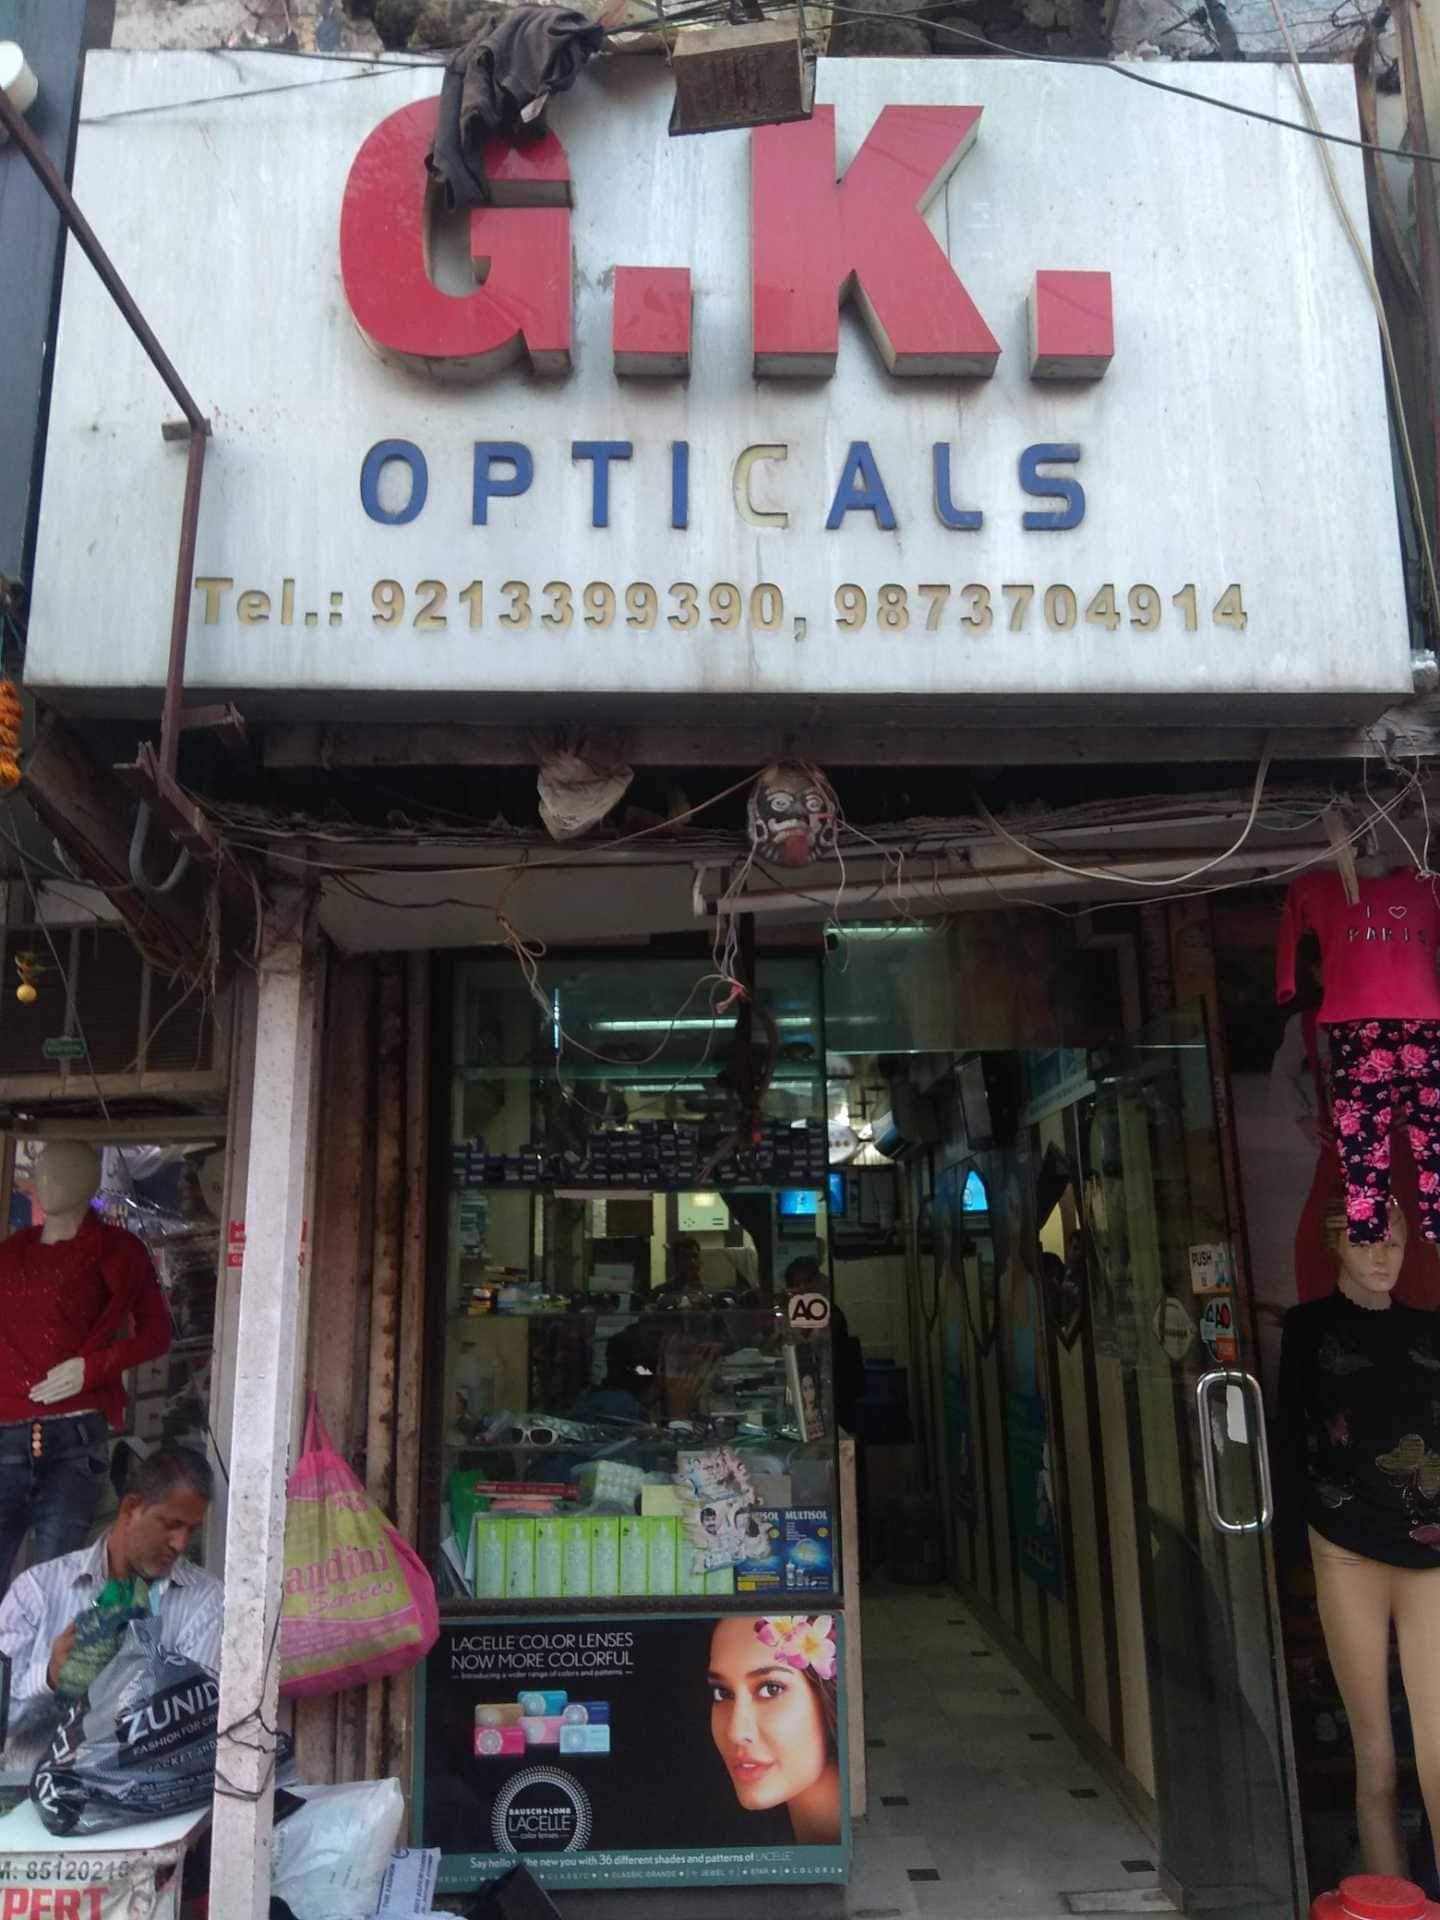 071530c4e471 Top 100 Crizal Spectacle Lens Dealers in Karol Bagh - Best Crizal ...